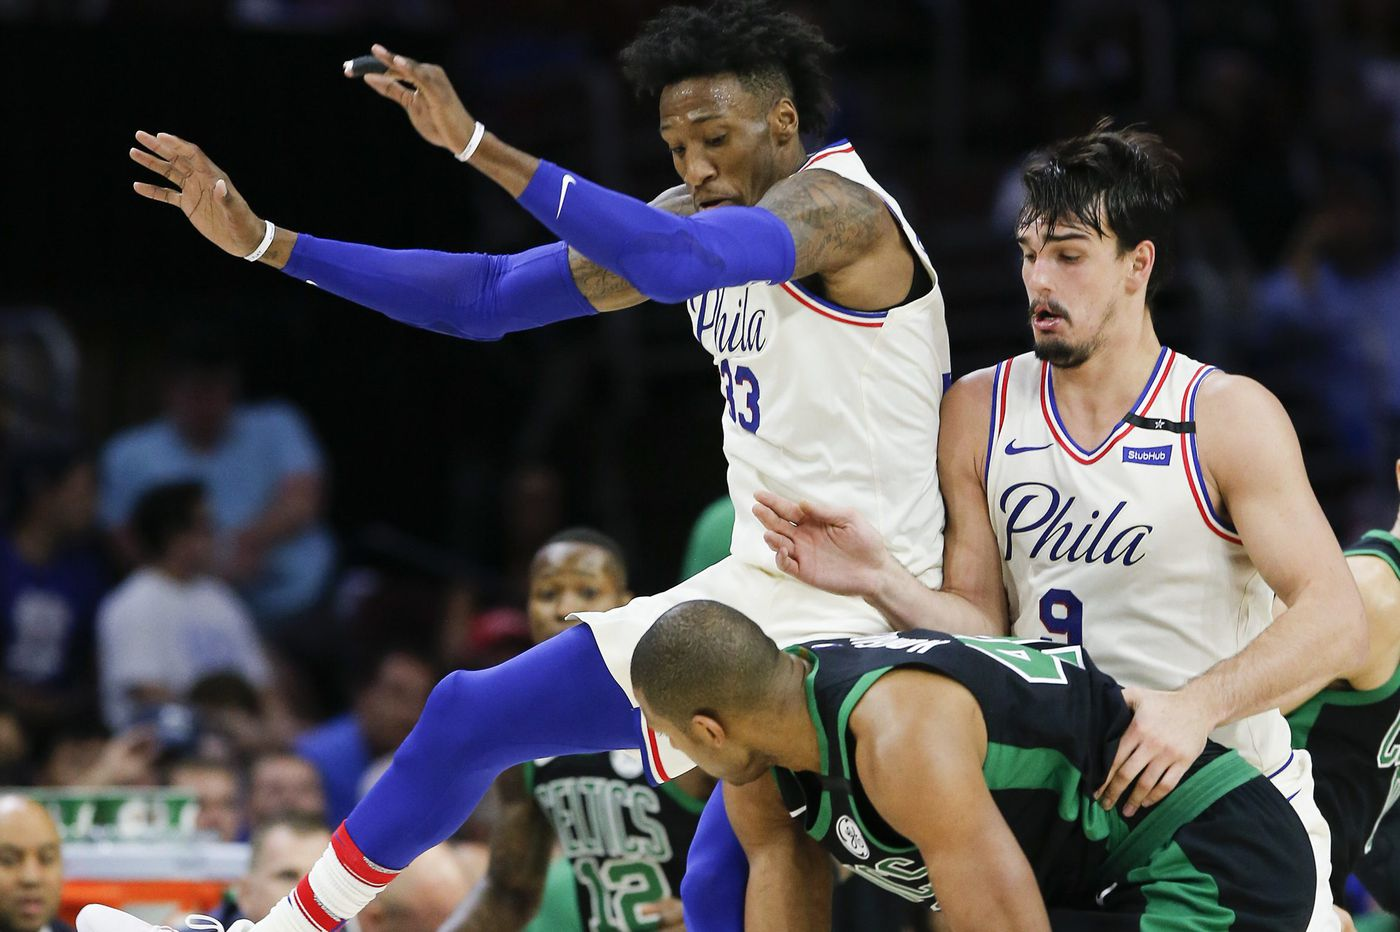 Locked on Sixers: Team needs consistent production from Robert Covington, Dario Saric